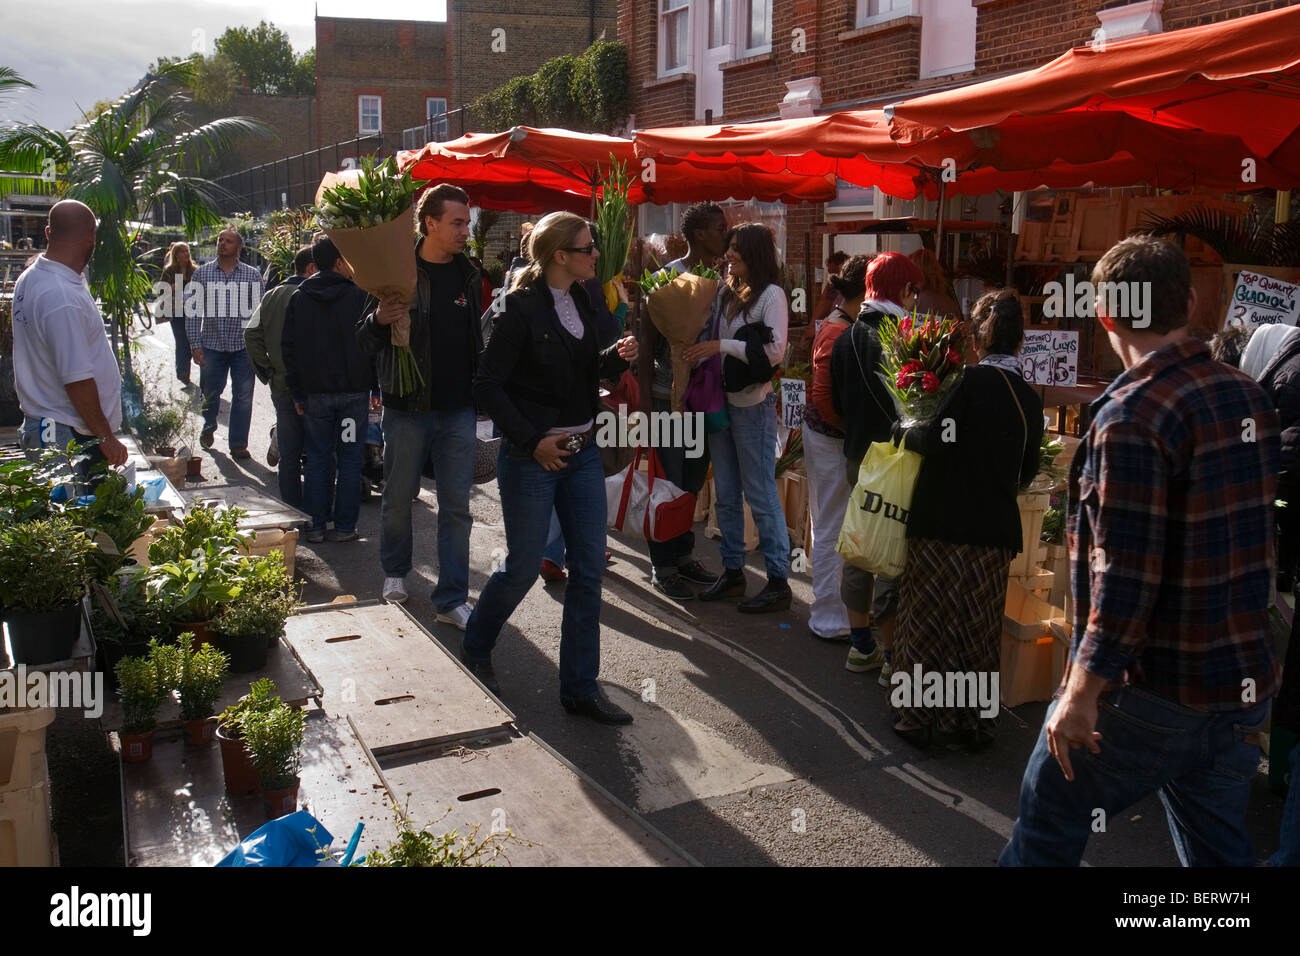 columbia road flower market in london's eastend Stock Photo